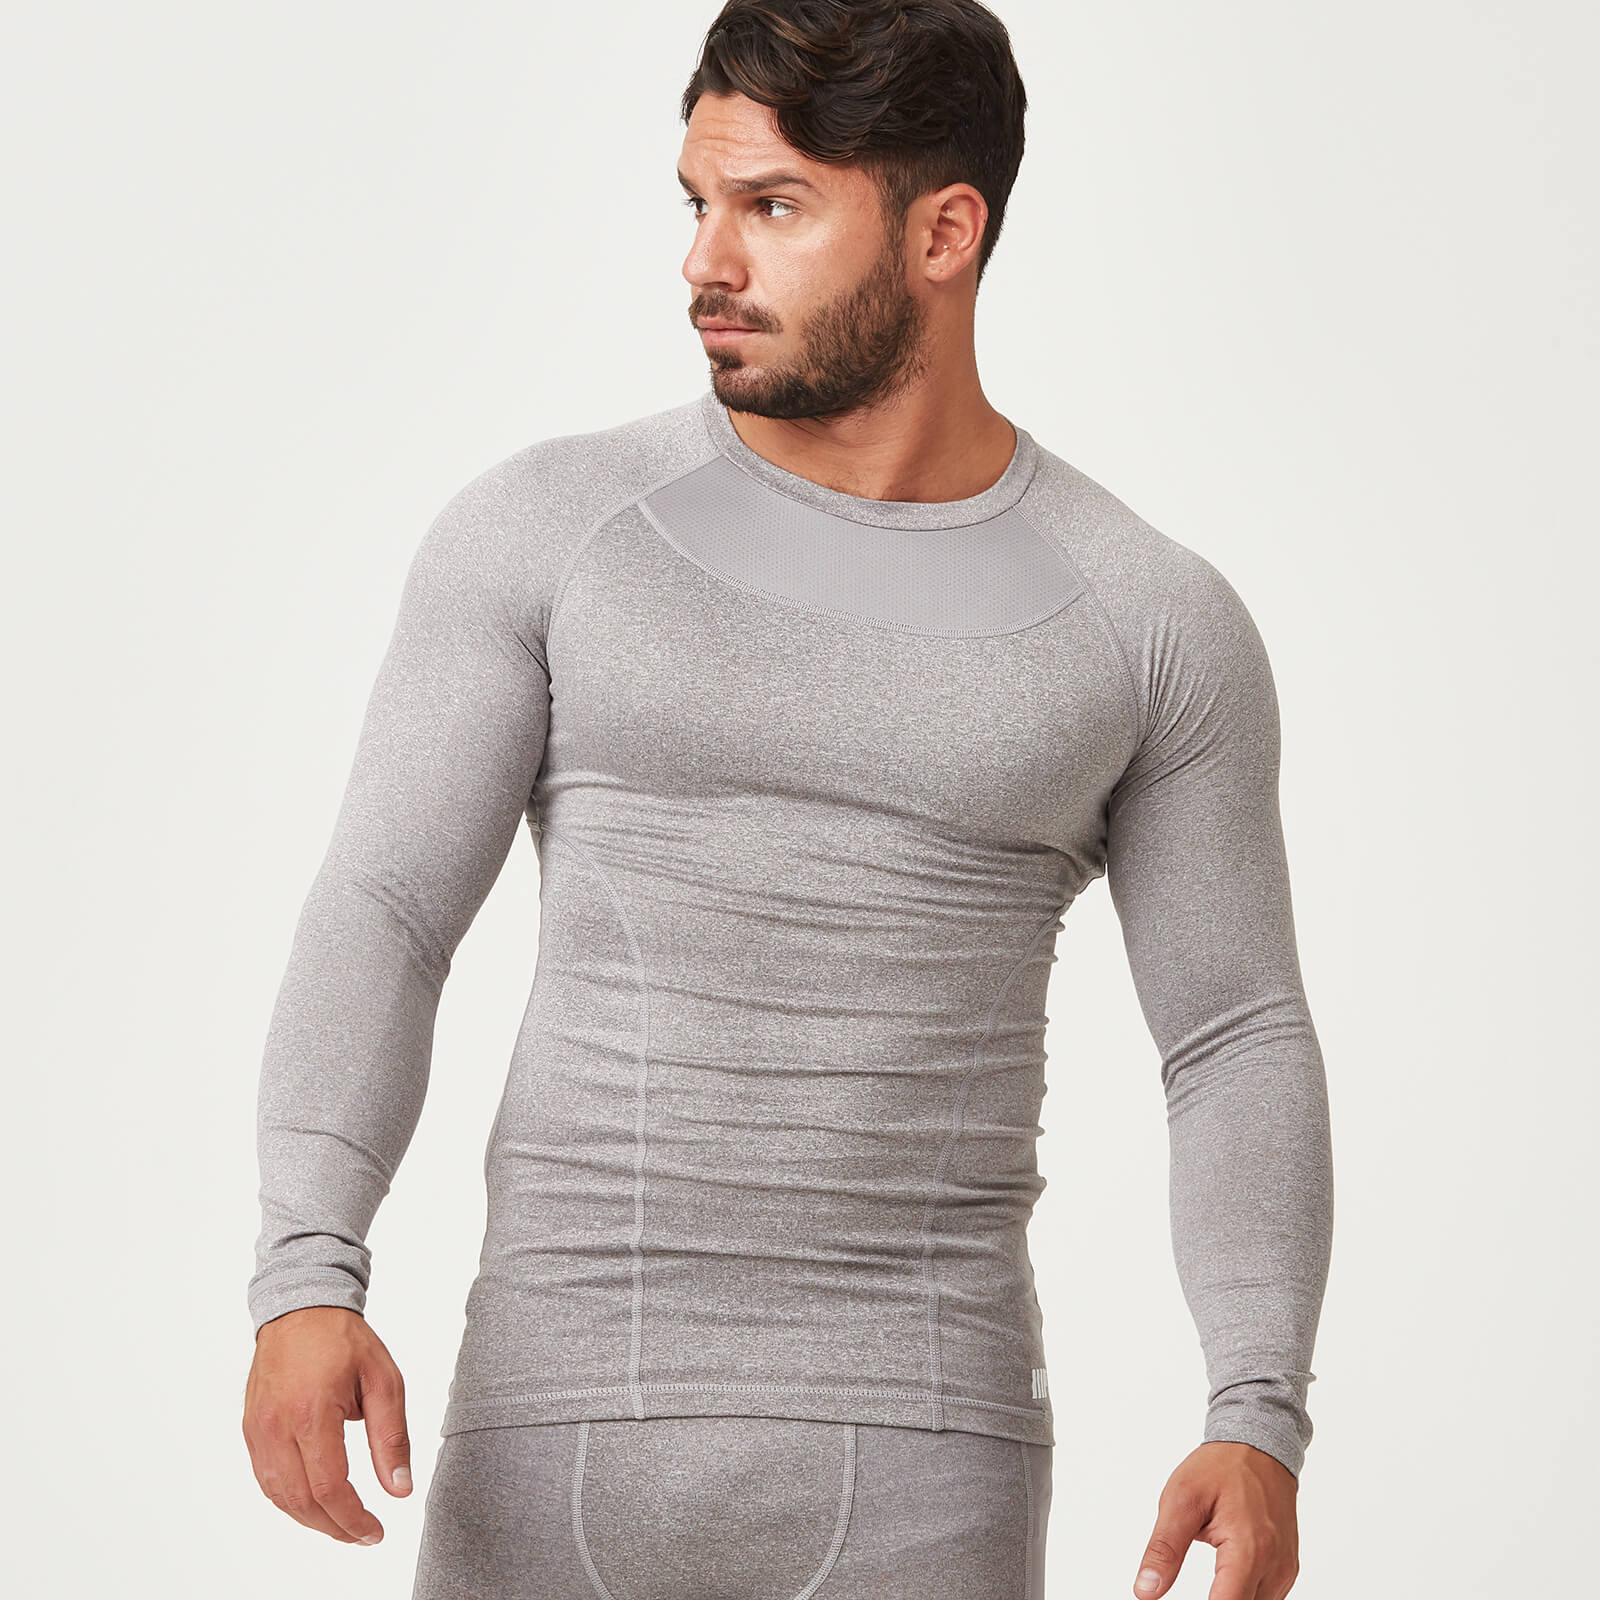 Myprotein Compression Long Sleeve Top - Grey Marl - S